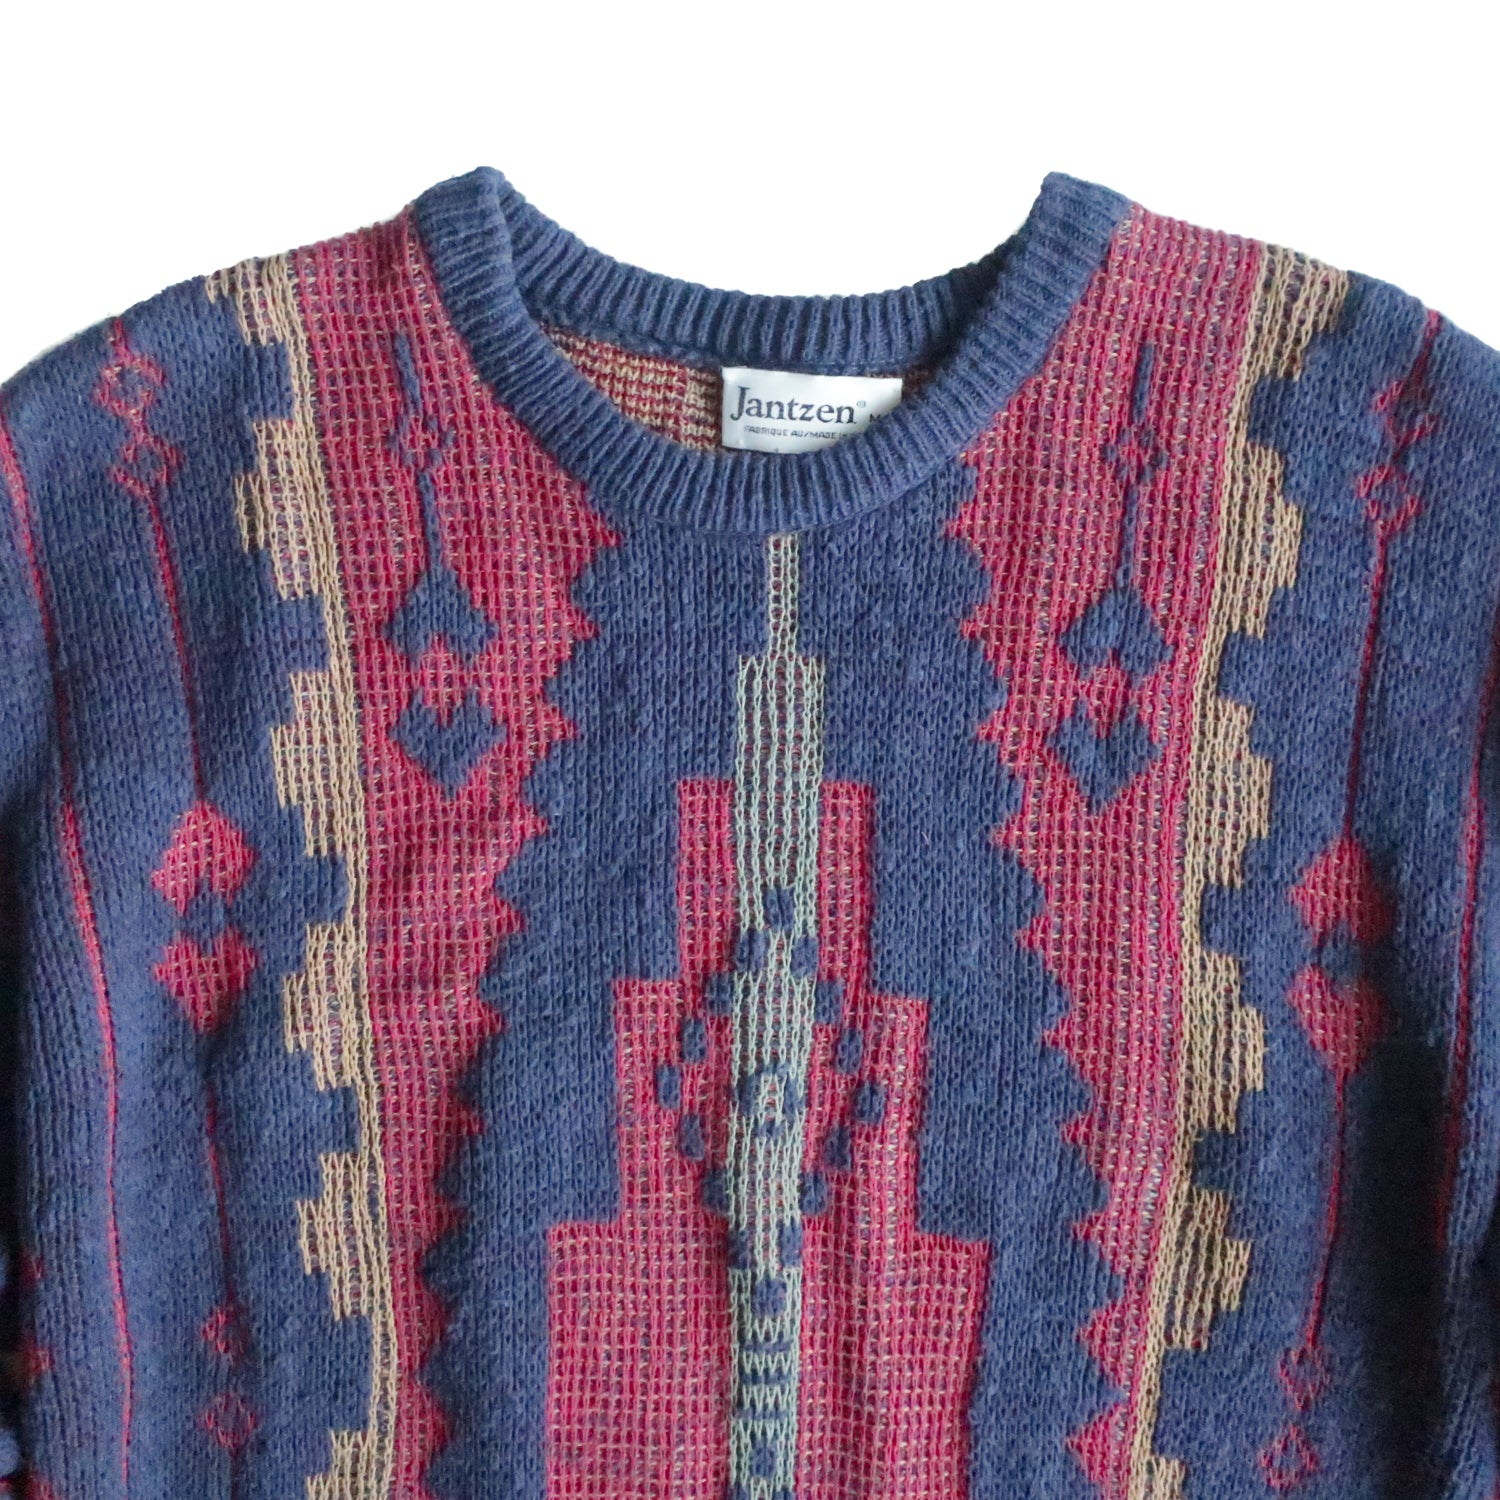 Second Room Vintage Clothing. Vintage navy blue and burgundy Jantzen crew neck sweater. Free North American shipping on all orders.